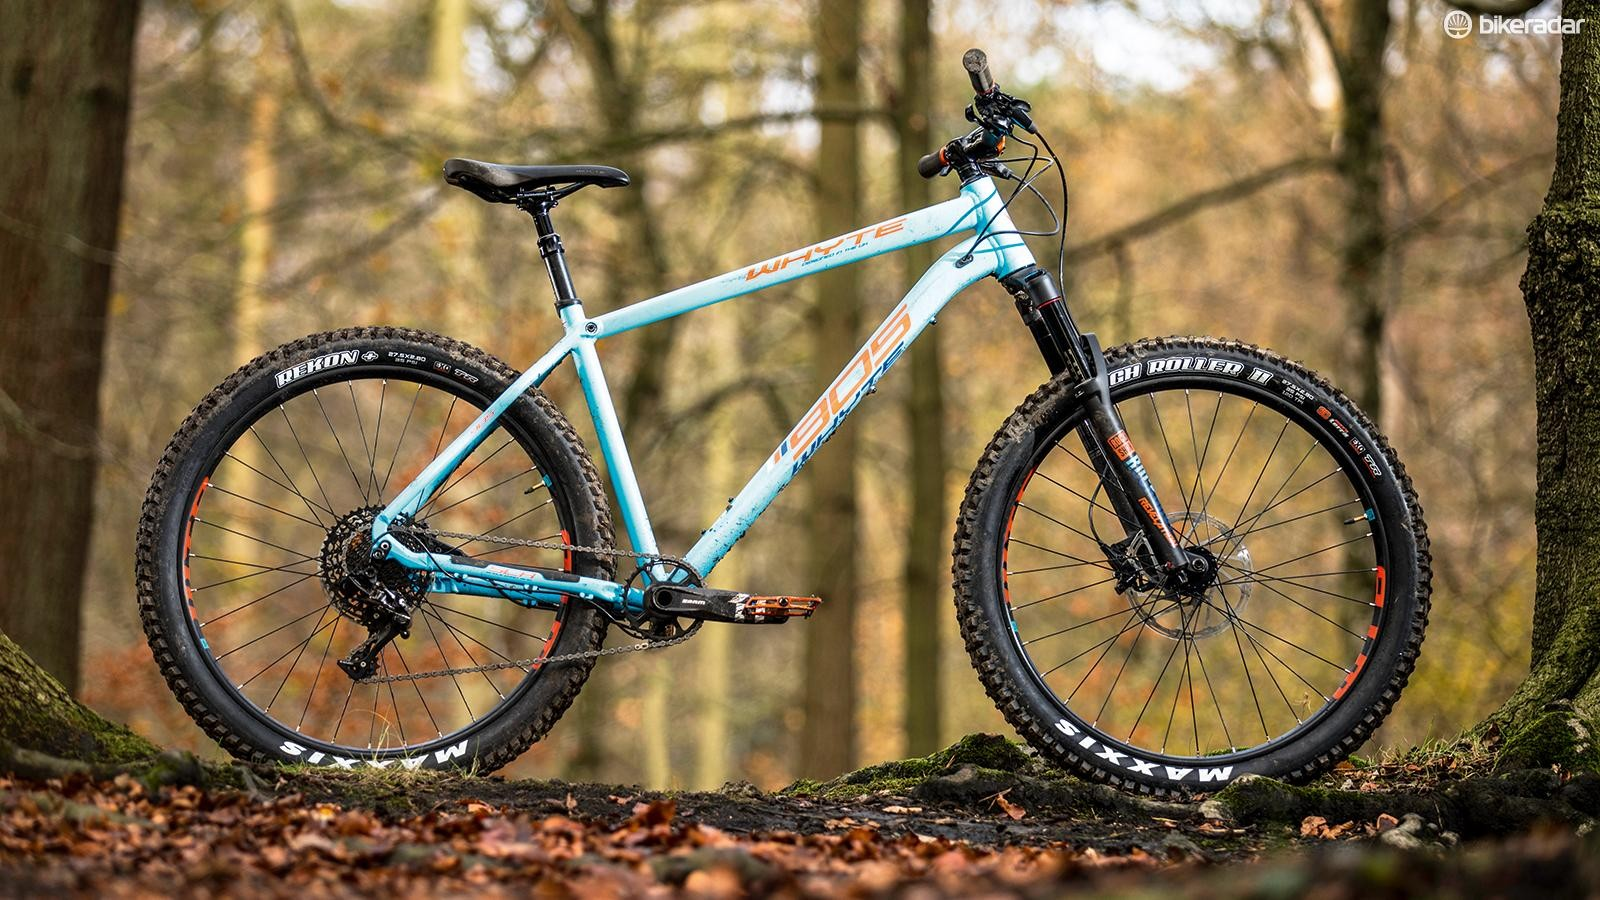 f519dee7985 Whyte bikes: latest reviews, news and buying advice - BikeRadar